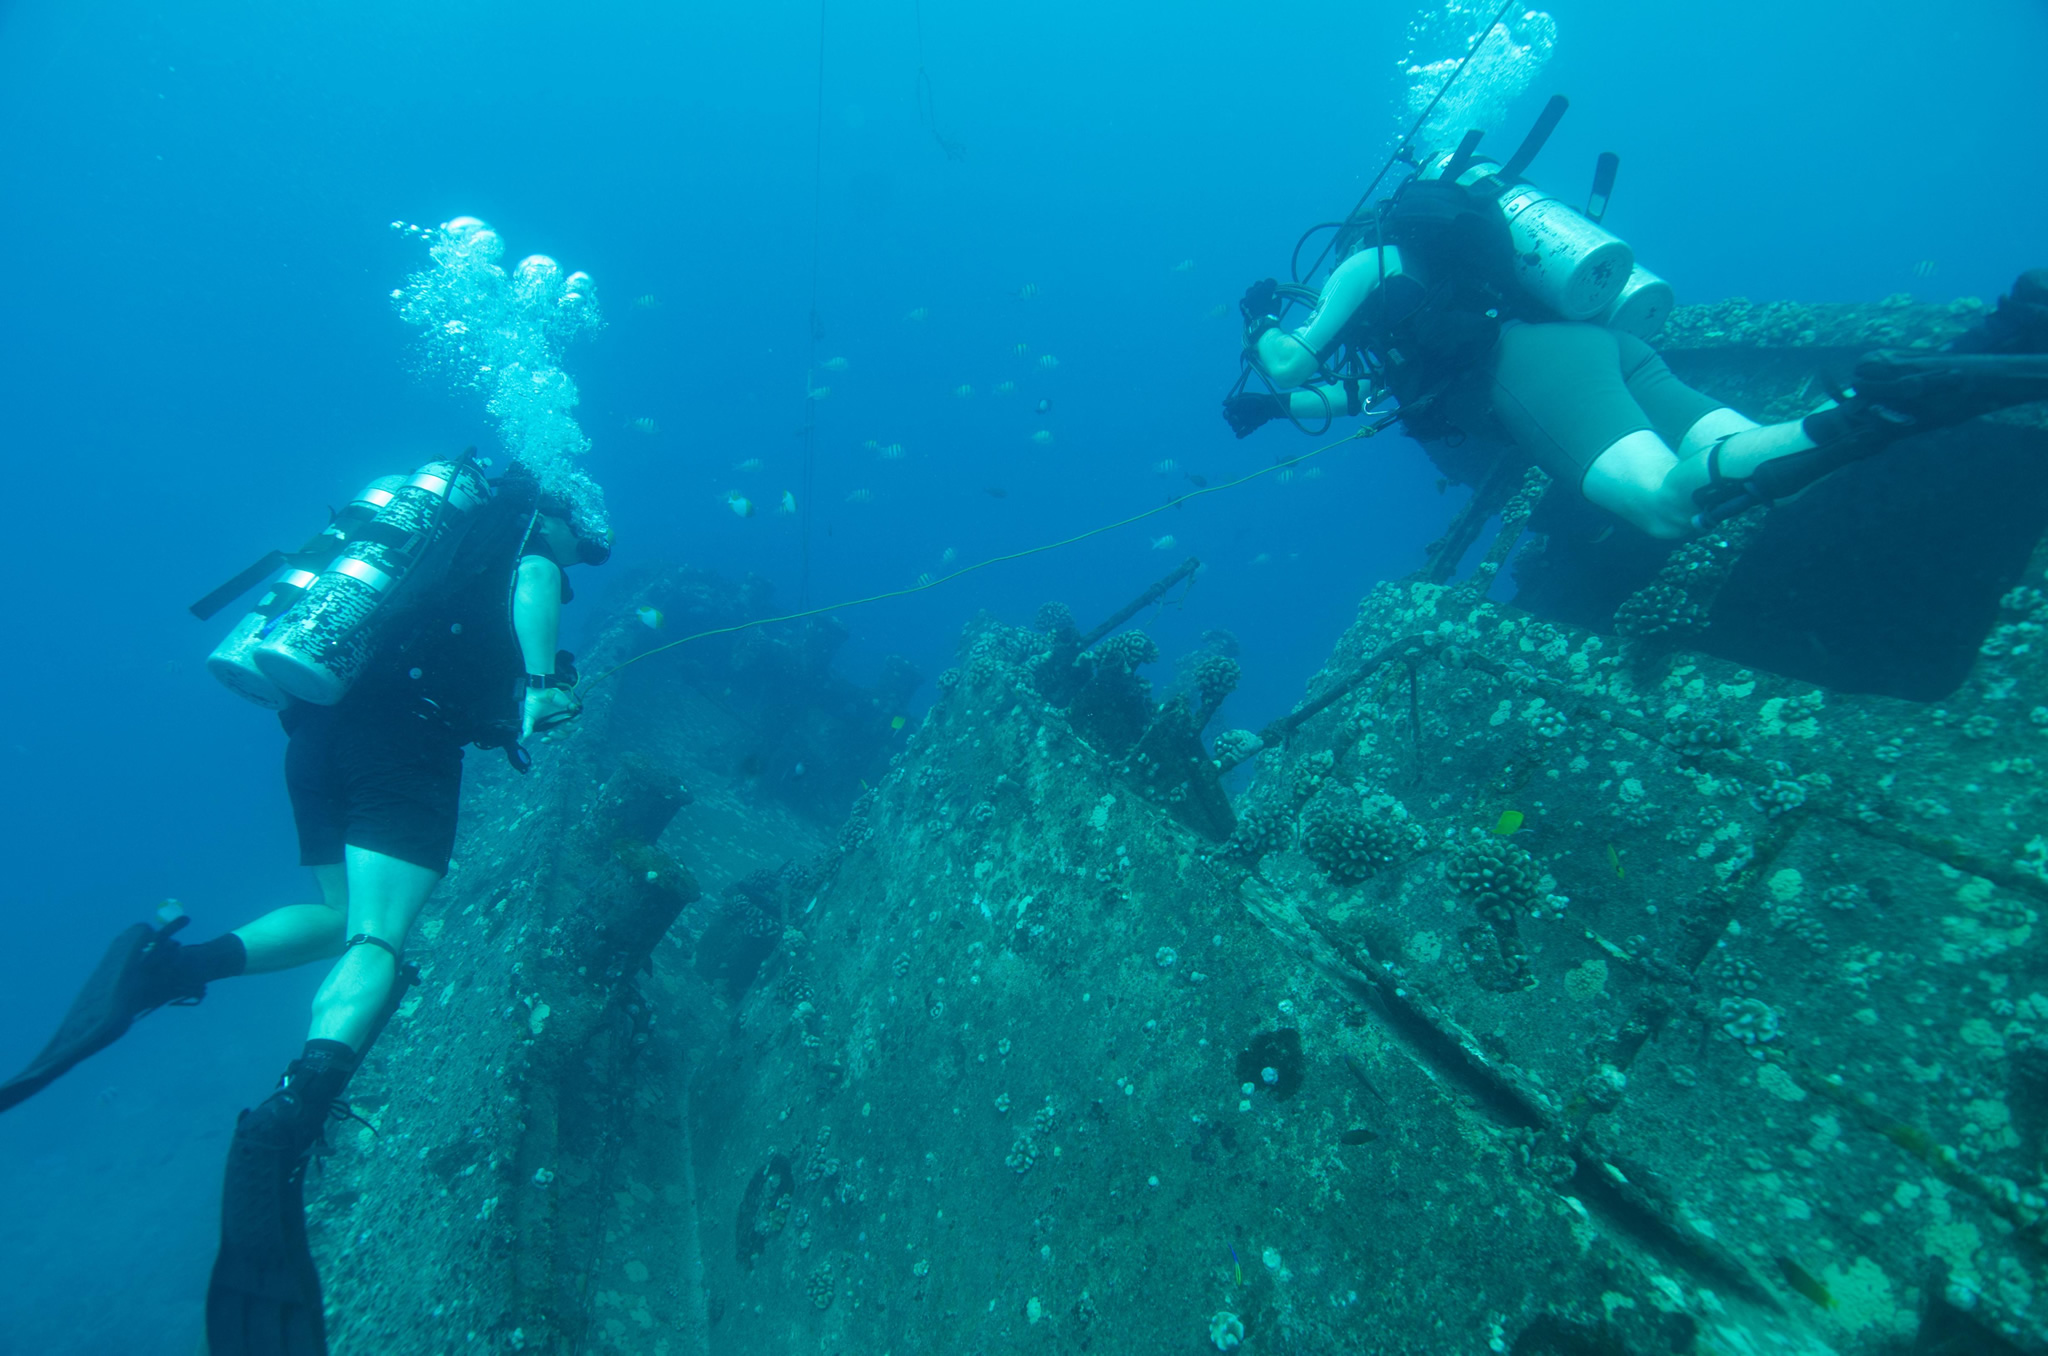 Canadian Combat Dive Team Leader, Lieutenant Josh Bennett (left) and Dive Non-Commissioned Officer, Sergeant Nathan Miller search a sunken ship off the  coast of Pearl Harbor, Hawaii during RIMPAC 16 on July 16, 2016.